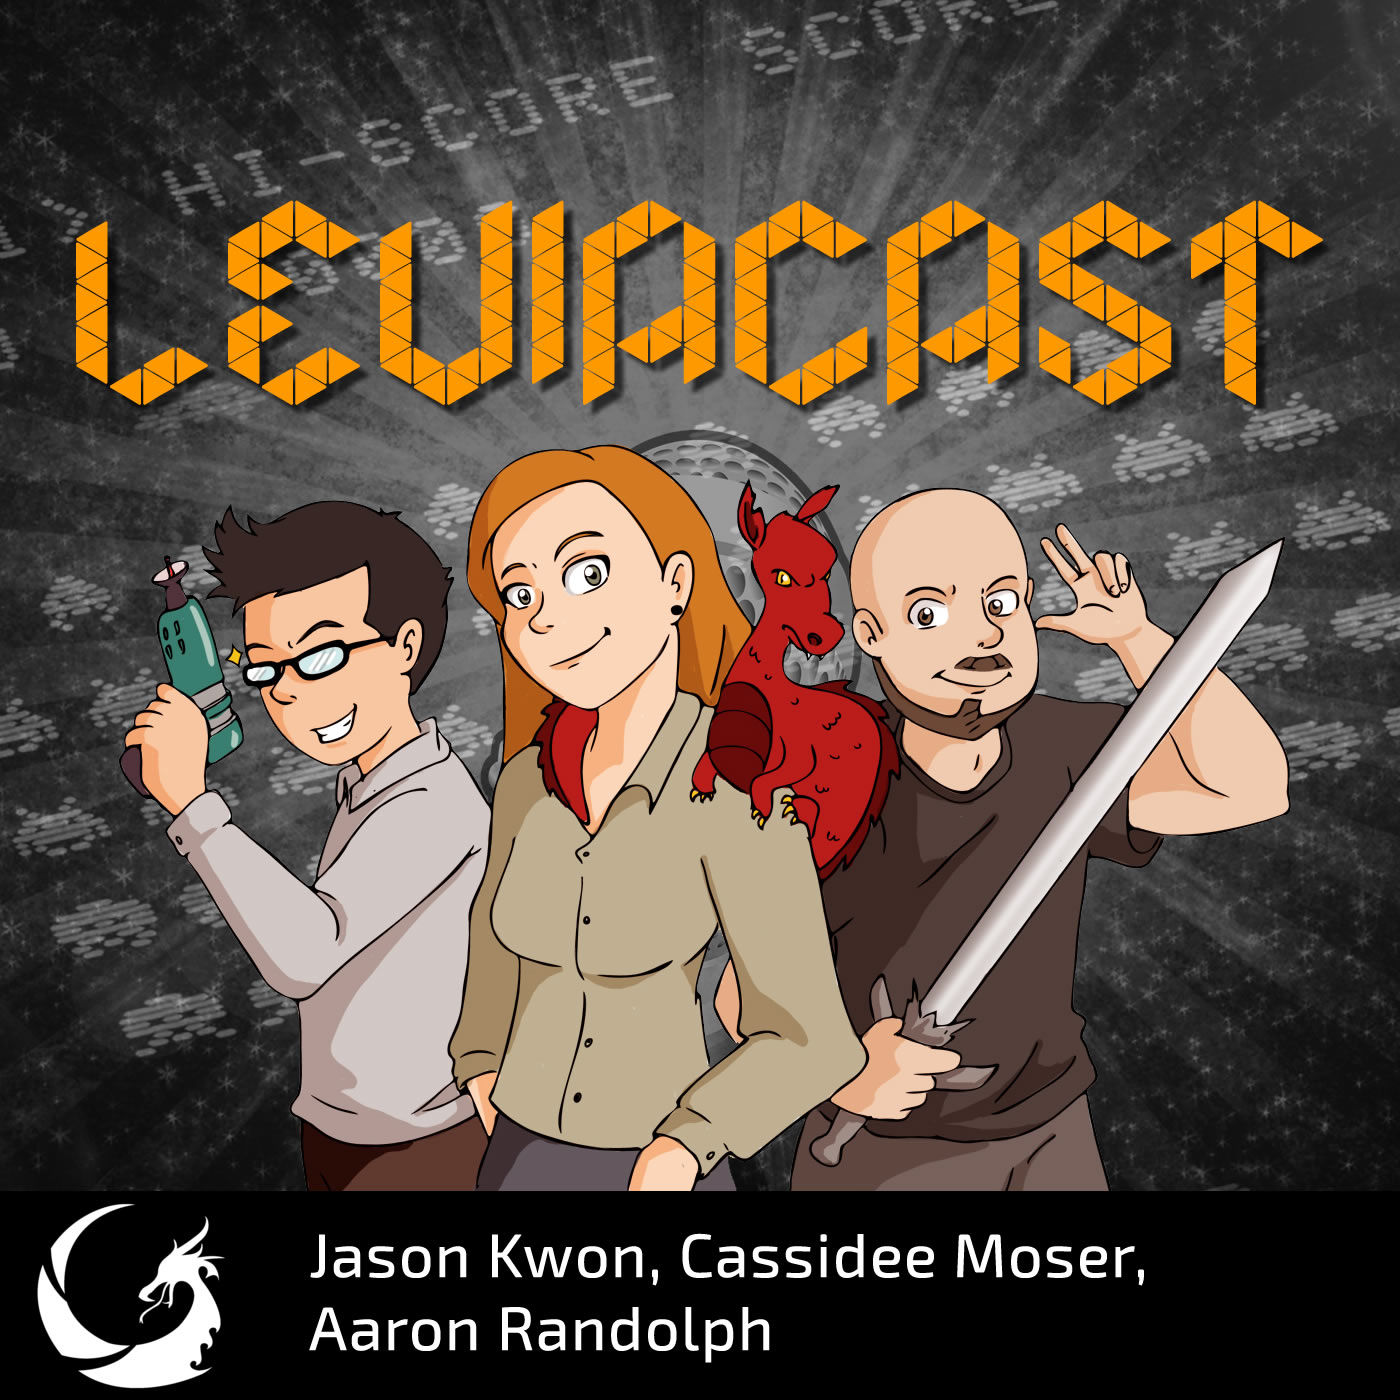 Leviacast 57: Escape Goat 2, Oculus Rift, and Game_Jam (With Guest Ian Stocker)